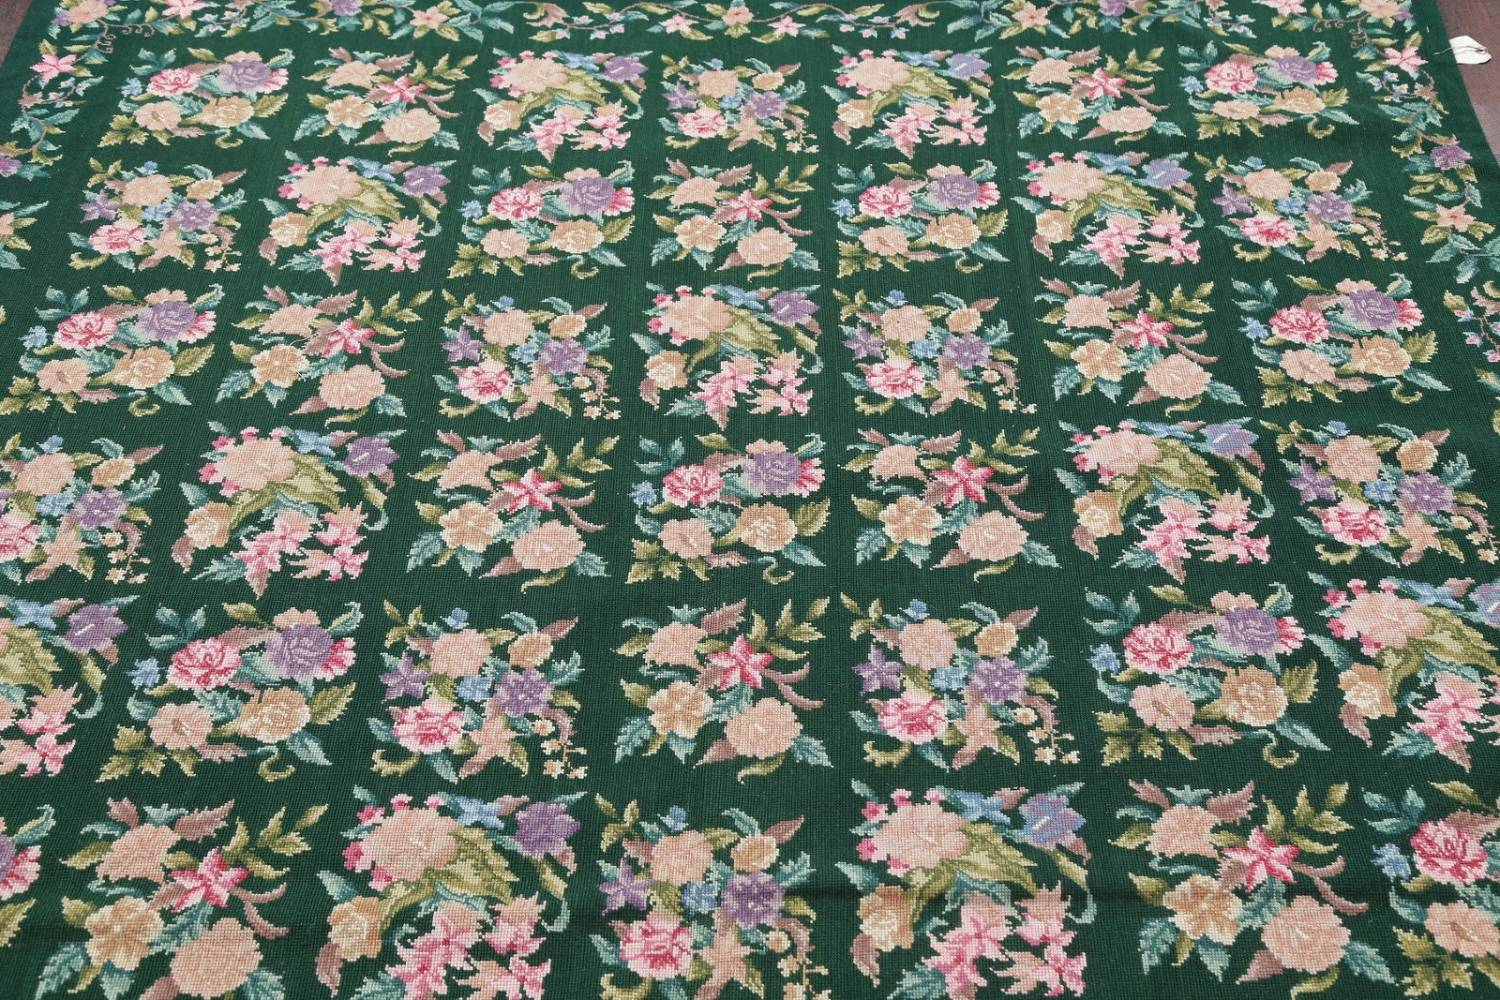 Hunter Green Floral Aubusson Needle-point Chinese Woven Area Rug Wool 6x9 image 9